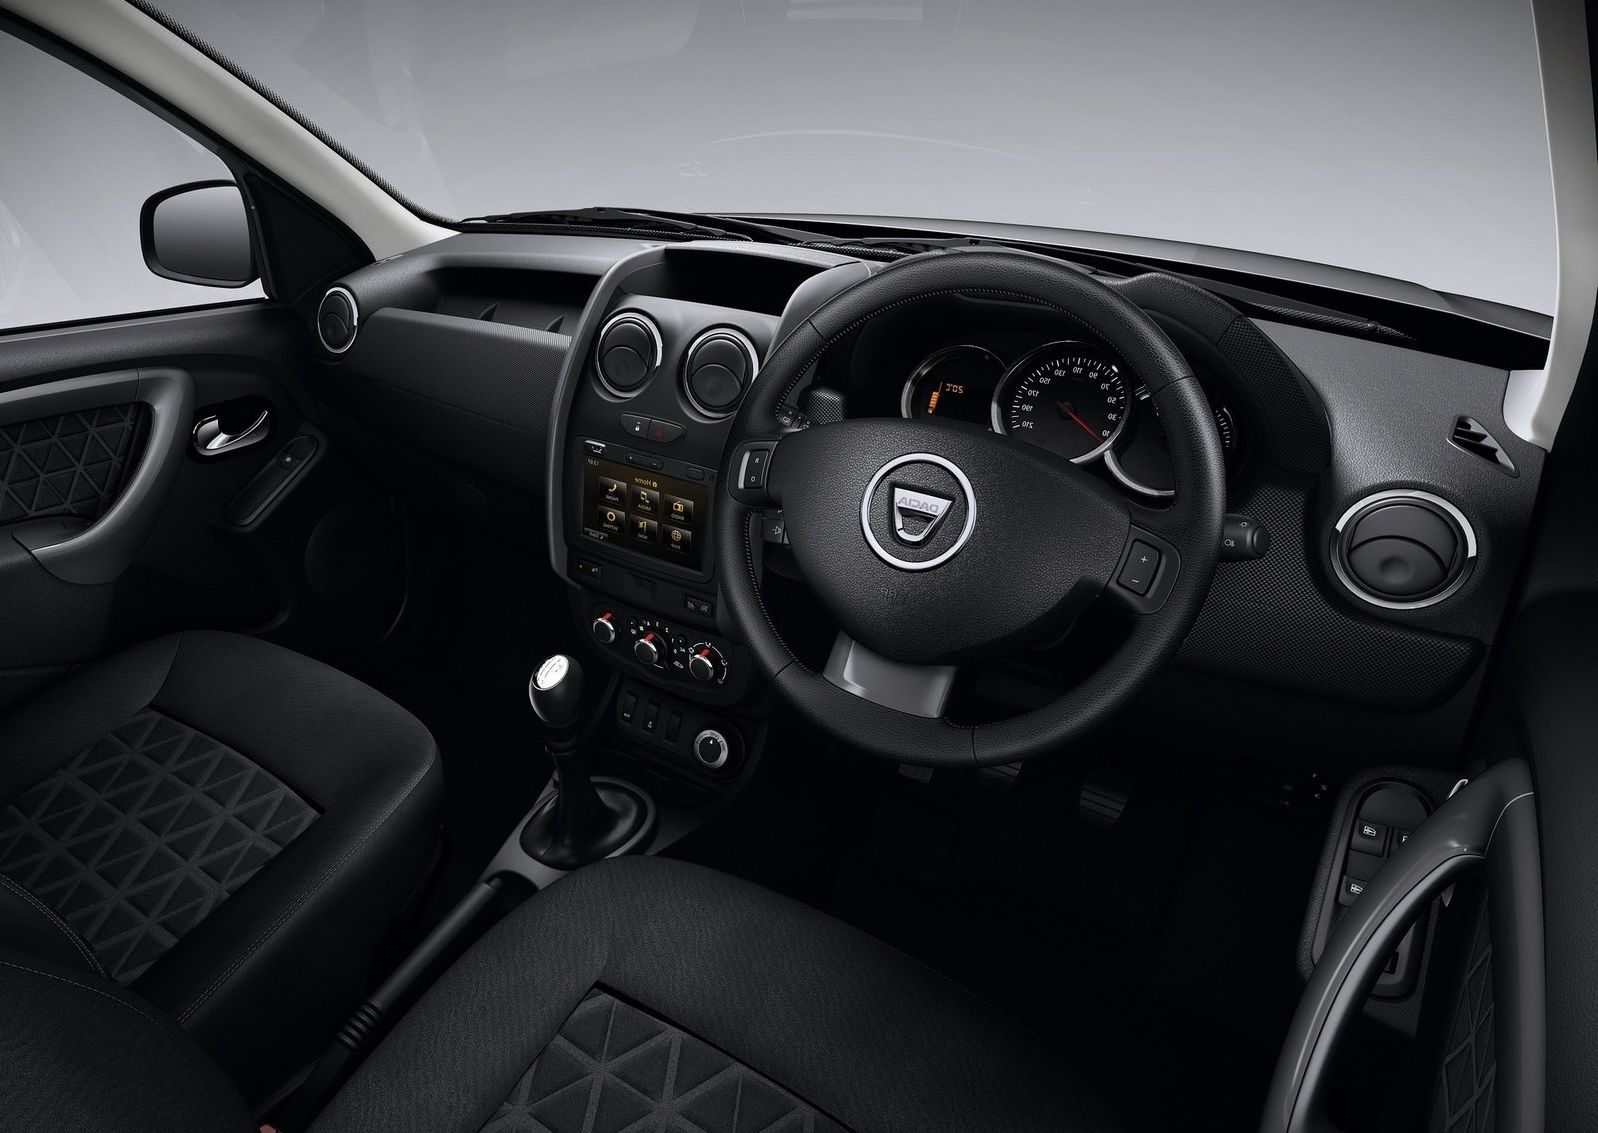 Dacia Duster 2018 Interior Pictures